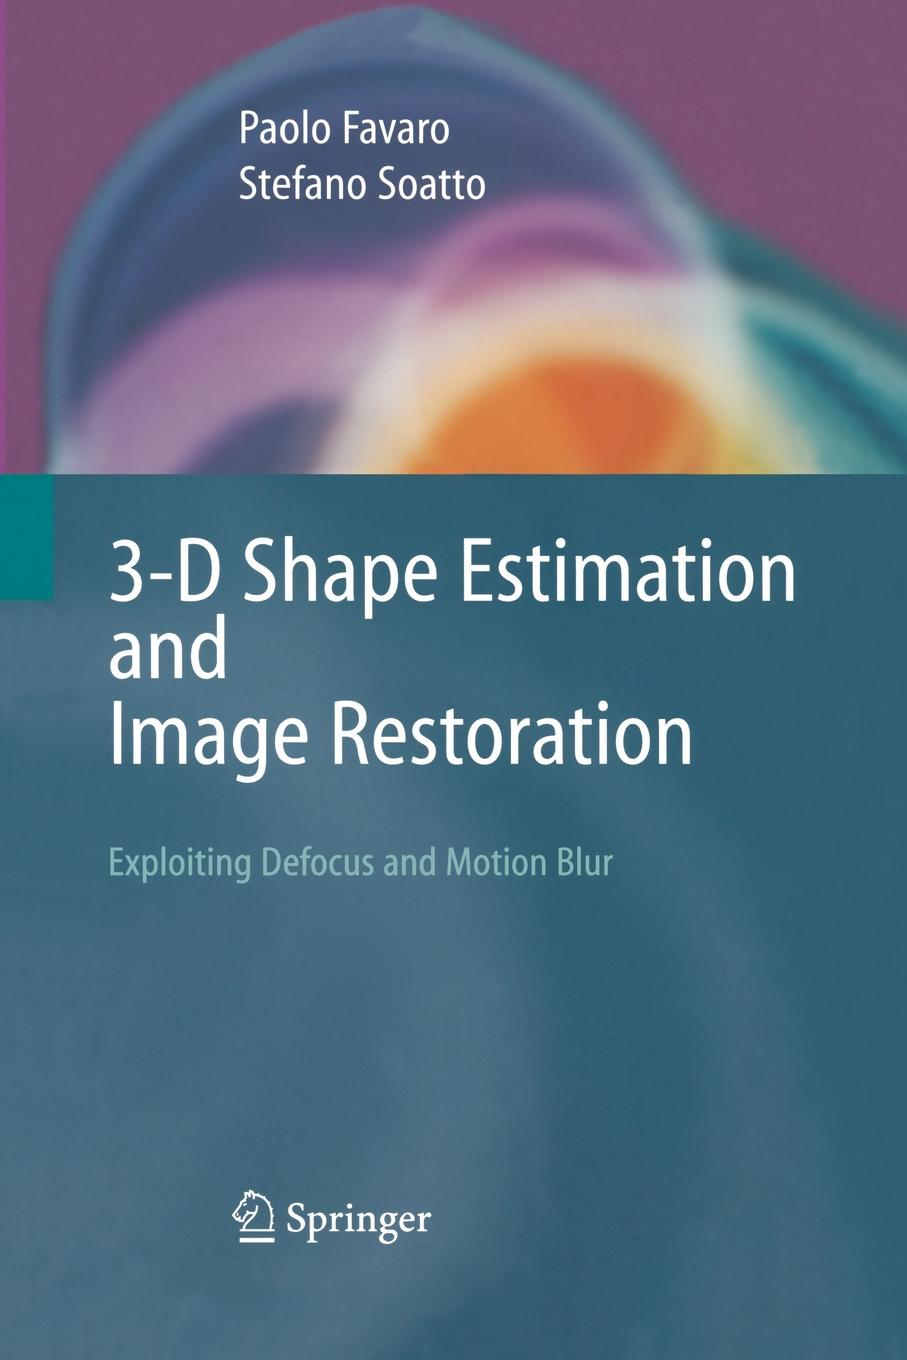 Paolo Favaro, Stefano Soatto 3-D Shape Estimation and Image Restoration. Exploiting Defocus Motion-Blur